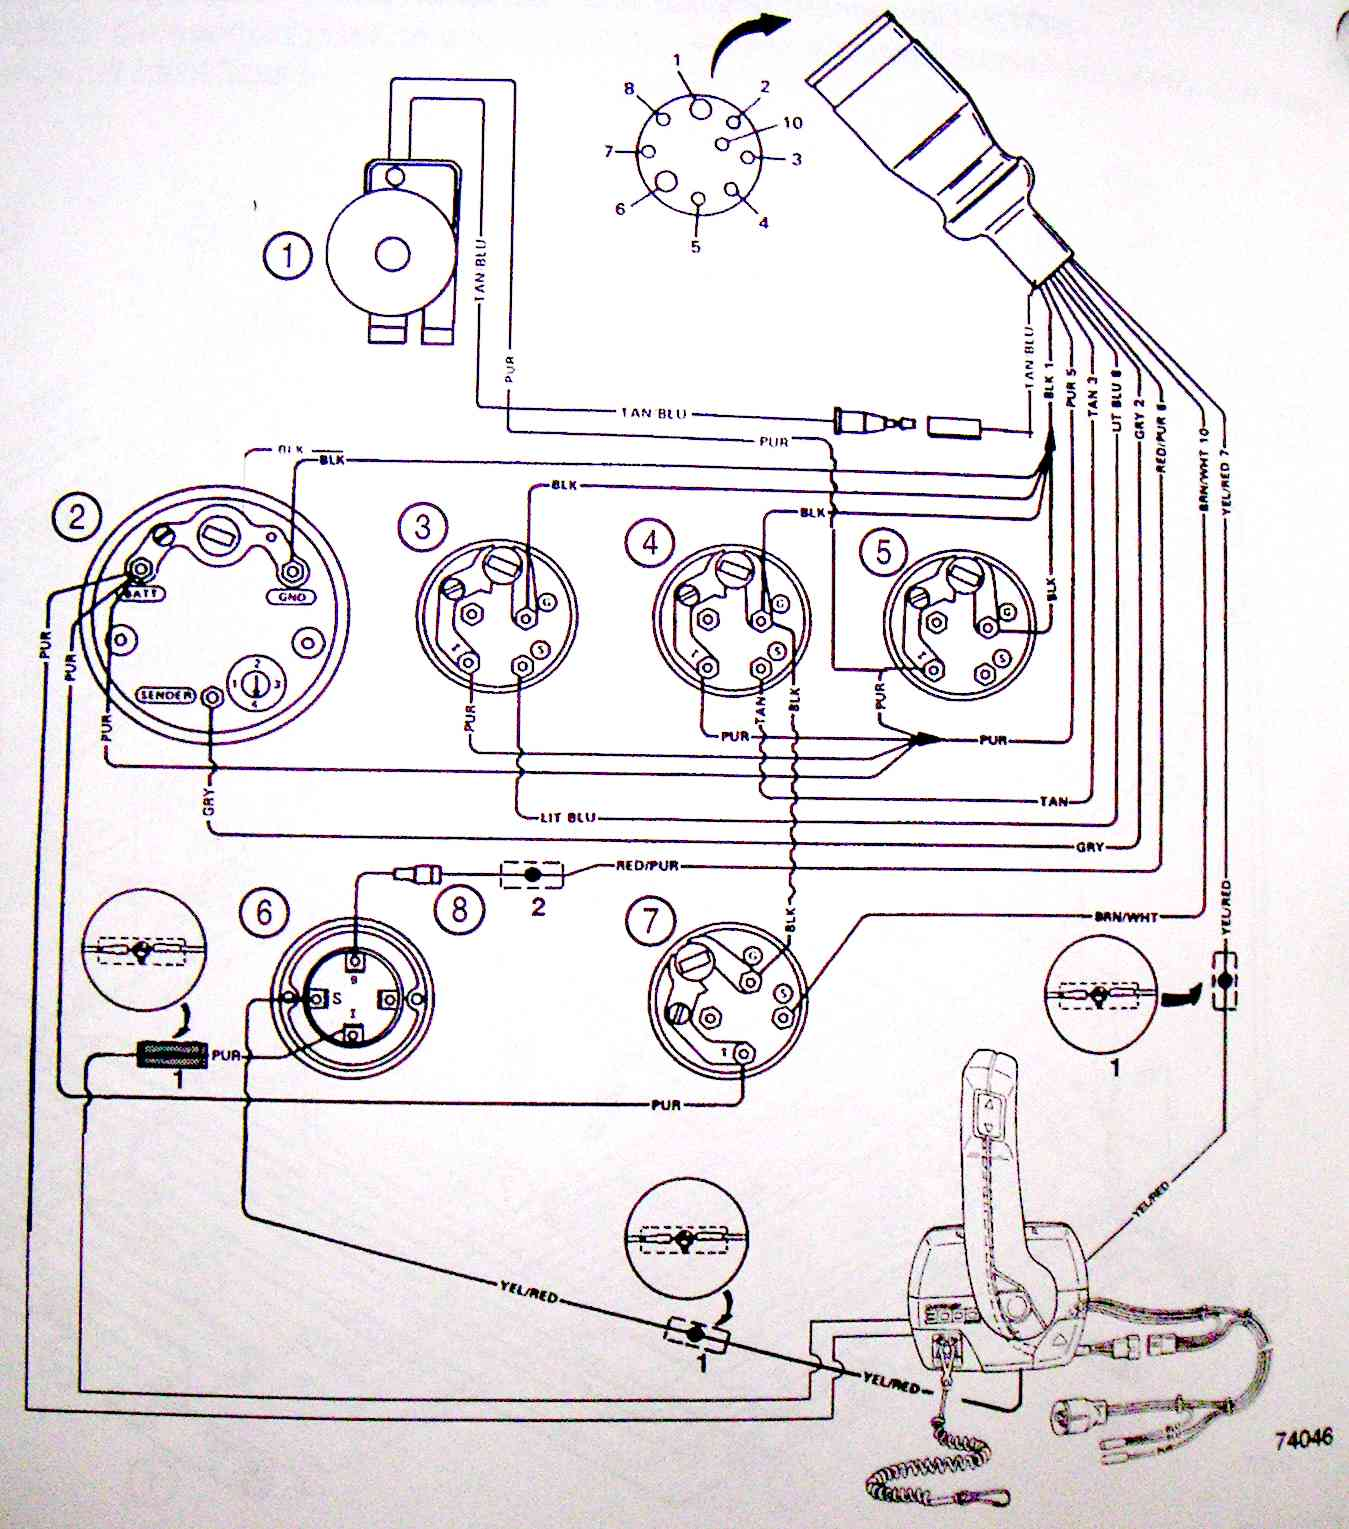 BoatHarness74046 mercruiser 5 7 wiring diagram 5 7 engine diagram \u2022 wiring diagrams  at bakdesigns.co